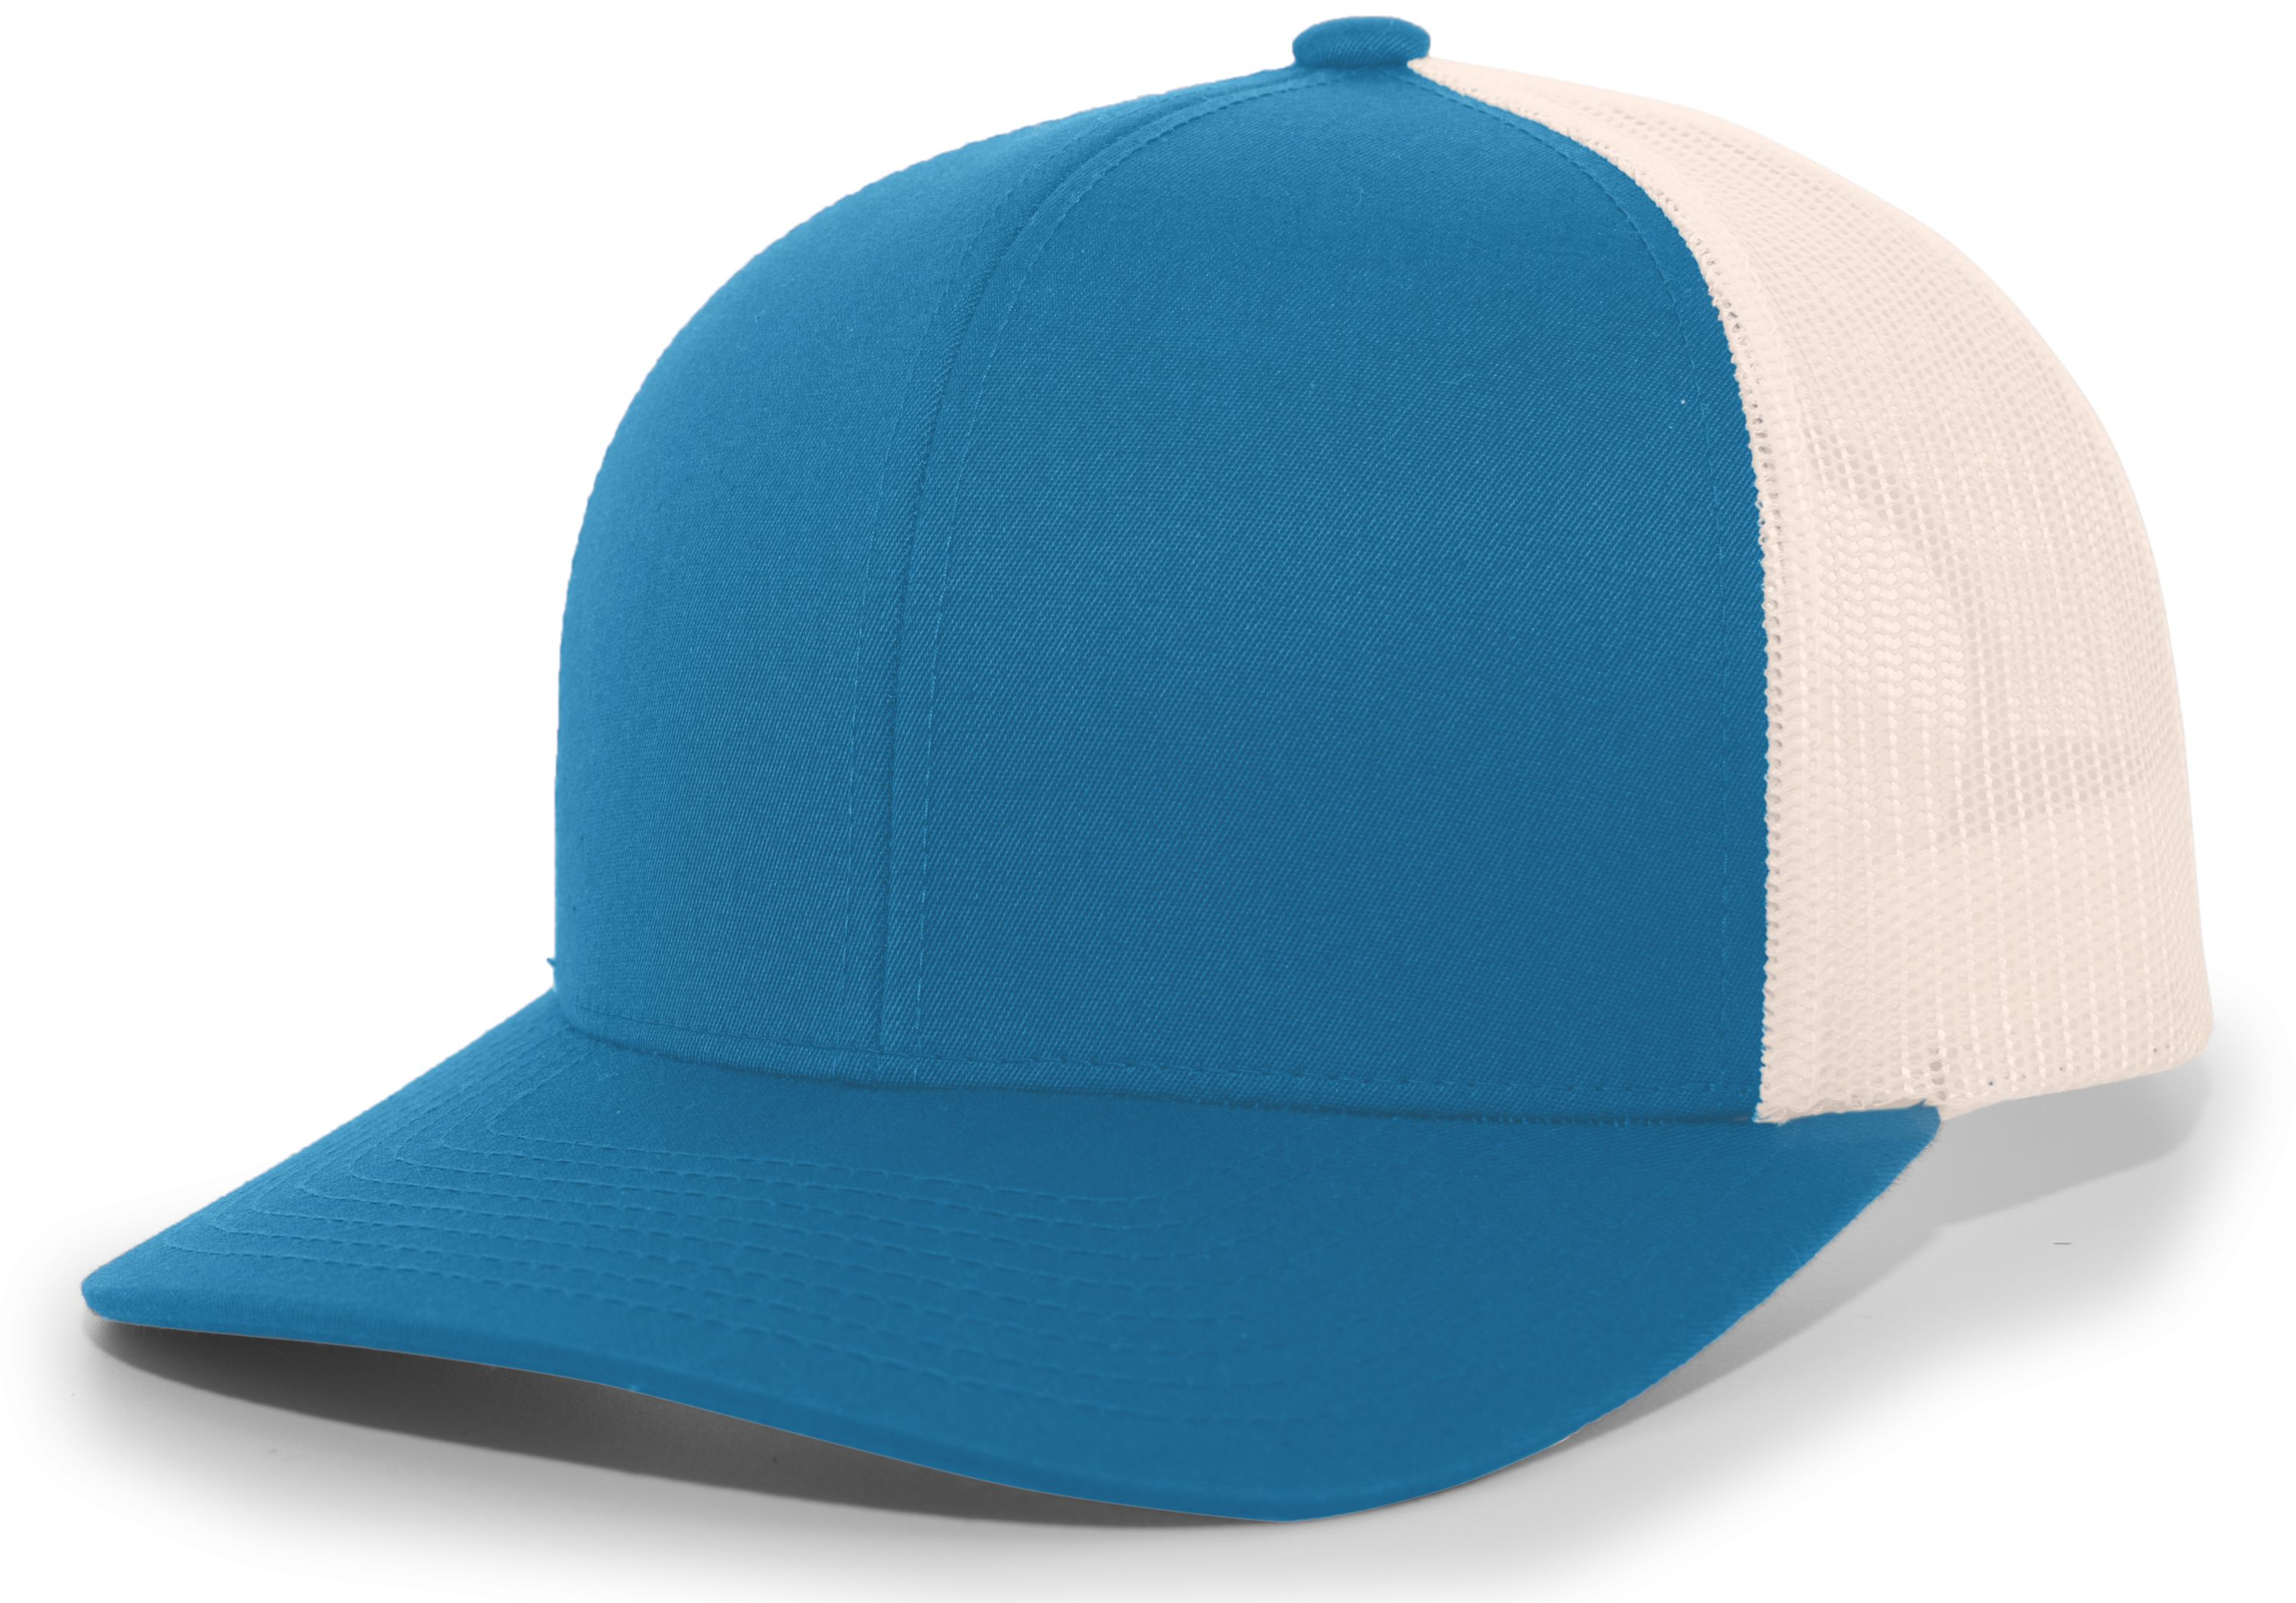 Trucker Snapback Cap - PANTHER TEAL/BEIGE/PANTHER TEAL